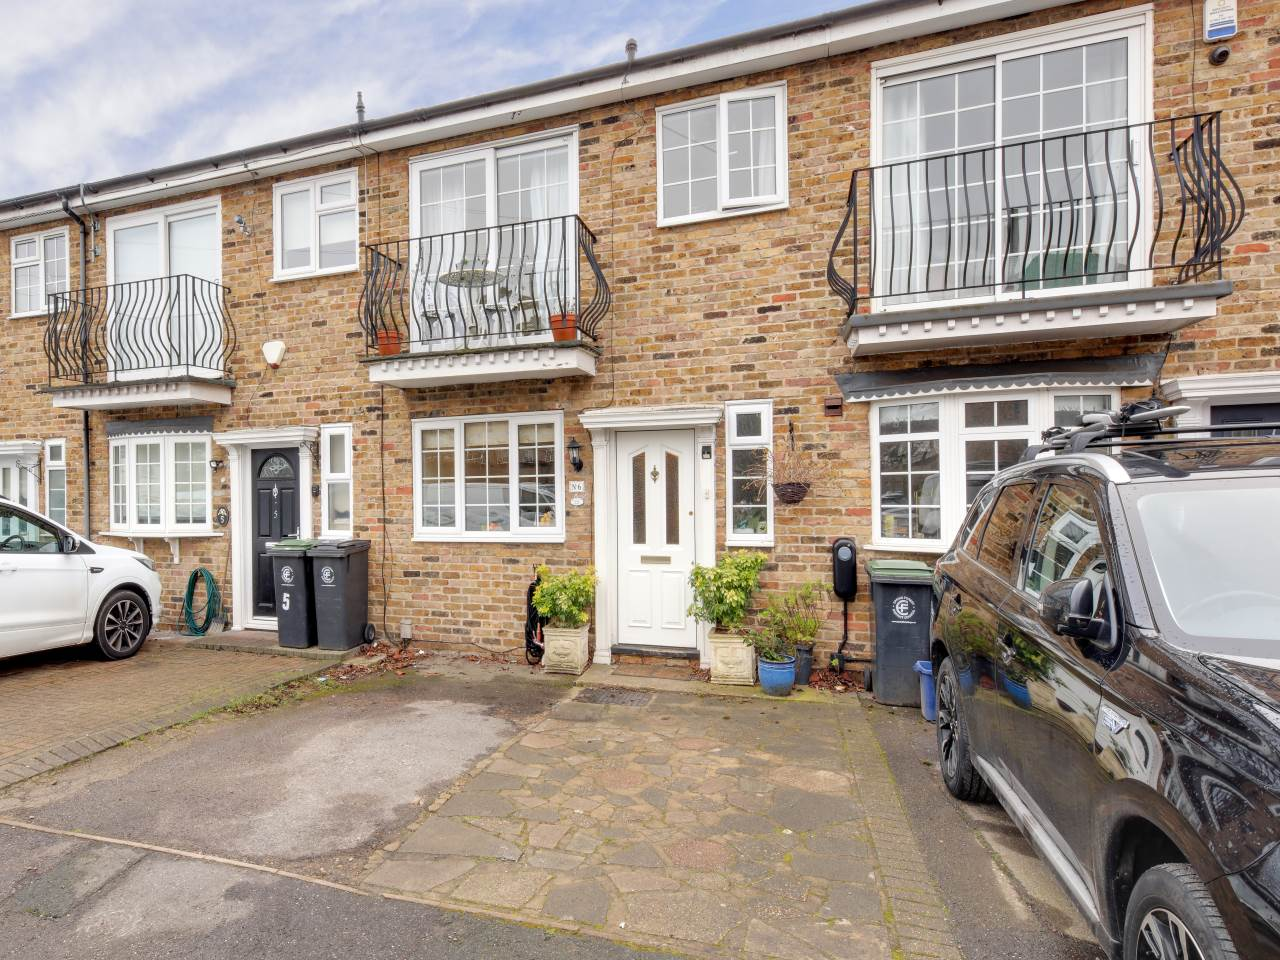 3 bed terraced house for sale in Faversham Close , Chigwell , IG7